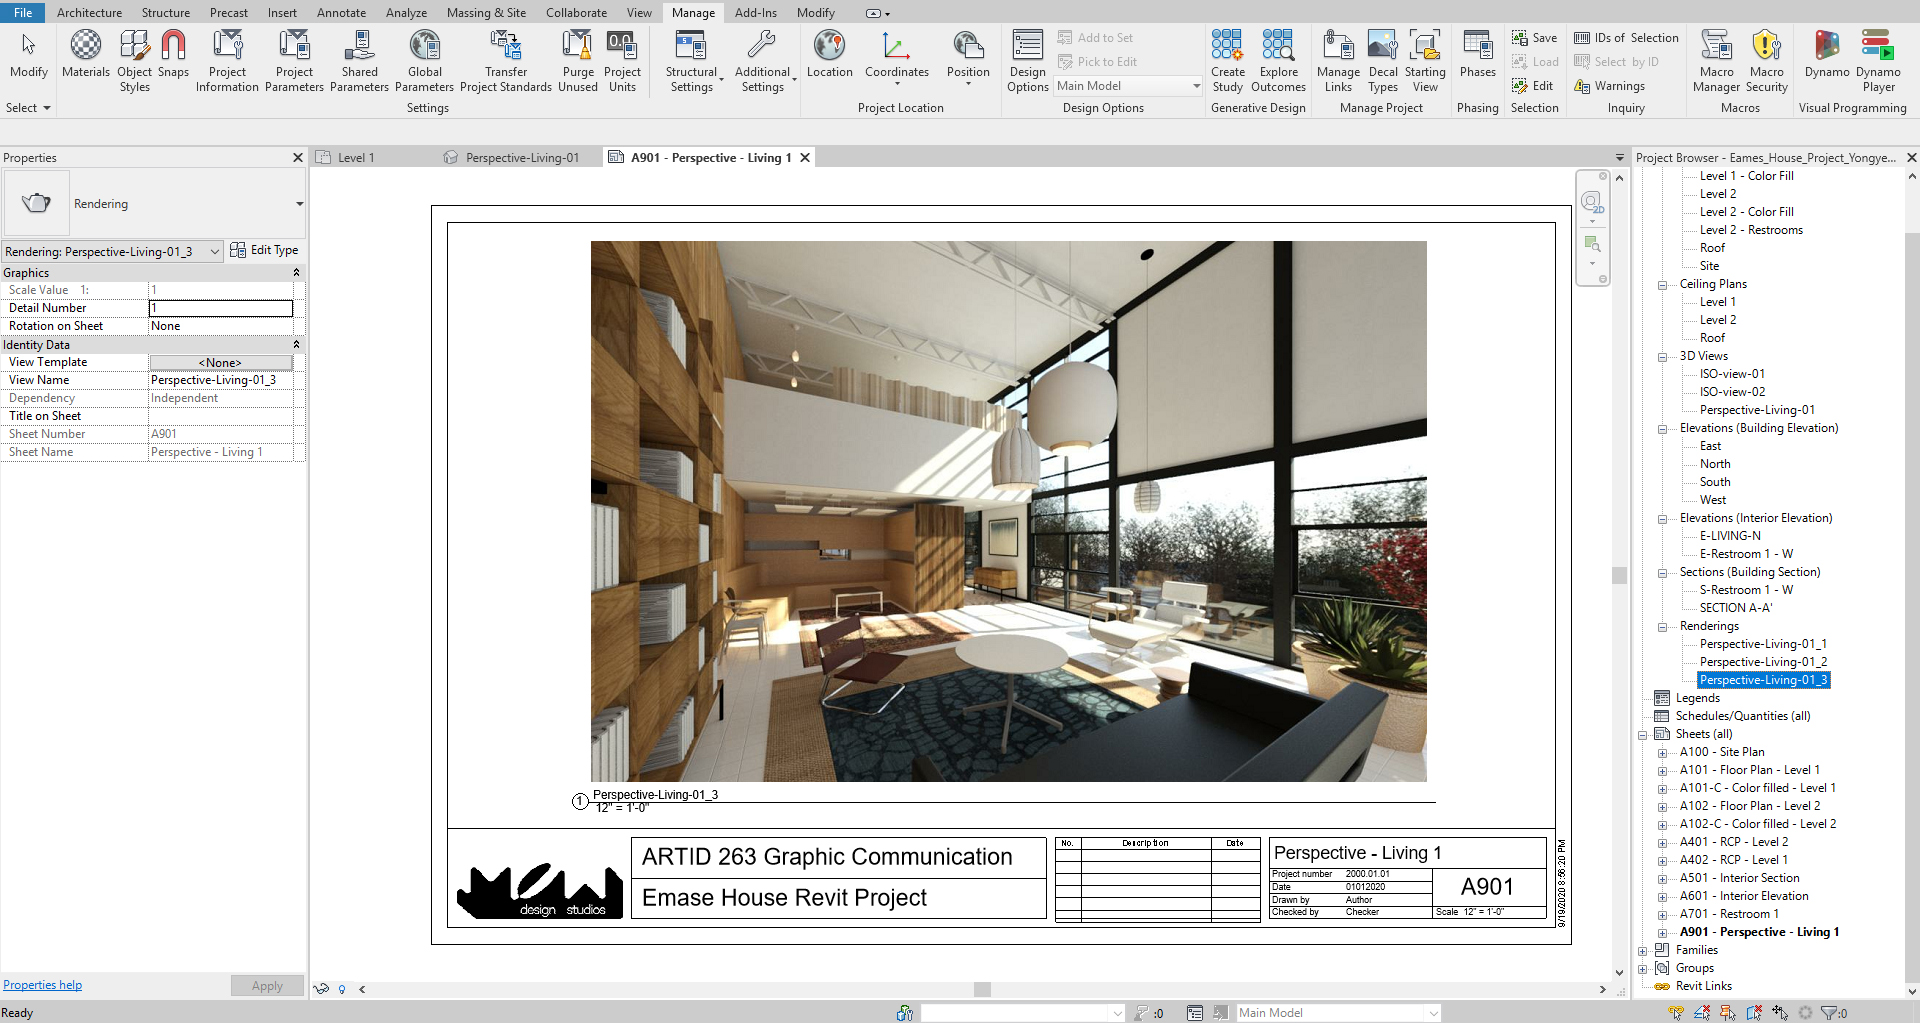 It shows the resulting image after adding the rendering in a sheet.